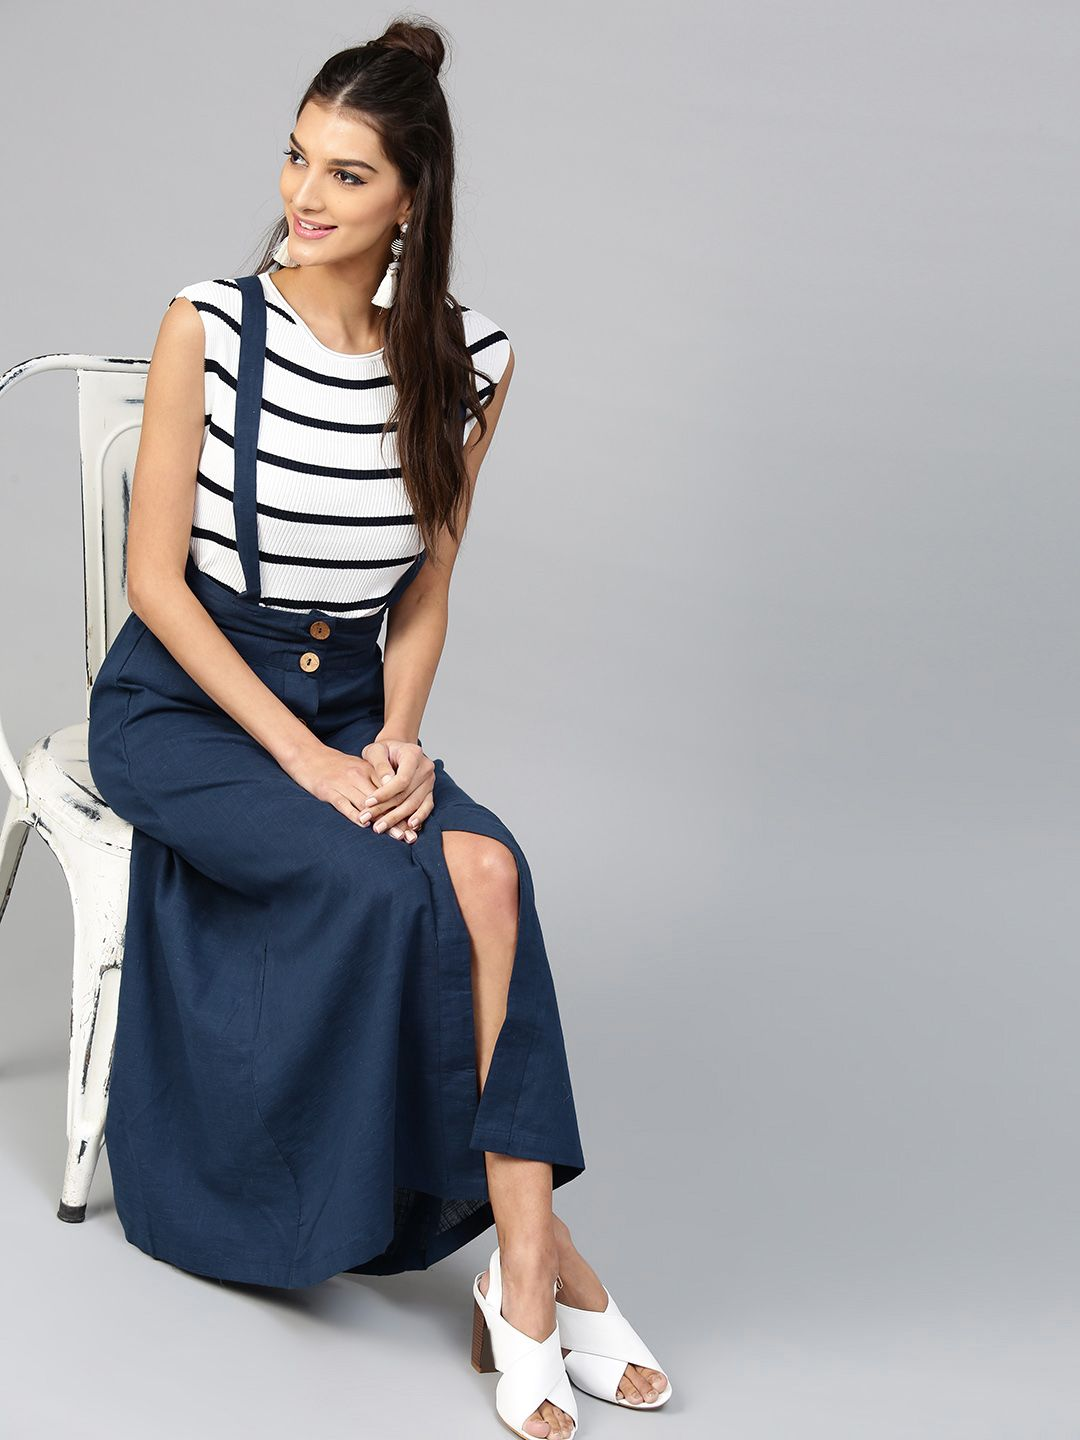 bceae0630e SASSAFRAS Navy Blue Maxi Skirt with Suspenders DISCOUNT:-50% #Women  #Navyblue #skirt #fashion #wear #look #love #like #cool #classy #brand  #quality